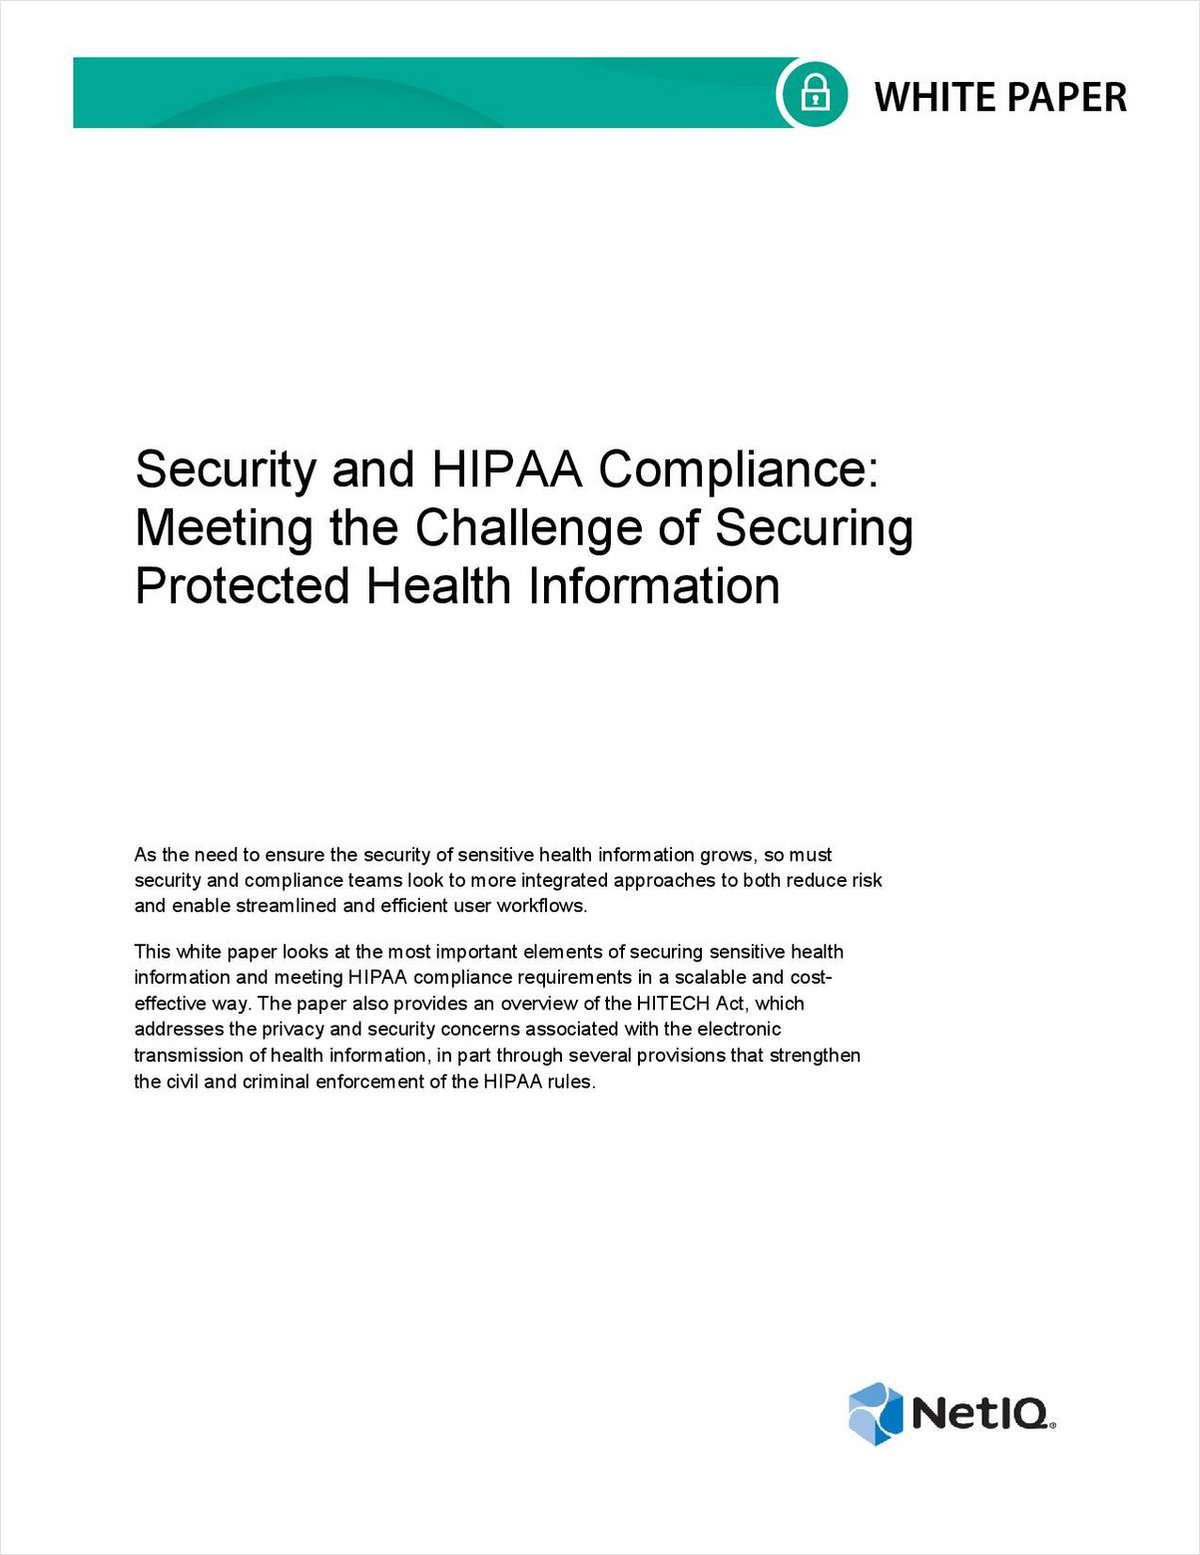 Security and HIPAA Compliance: Meeting the Challenge of Securing Protected Health Information